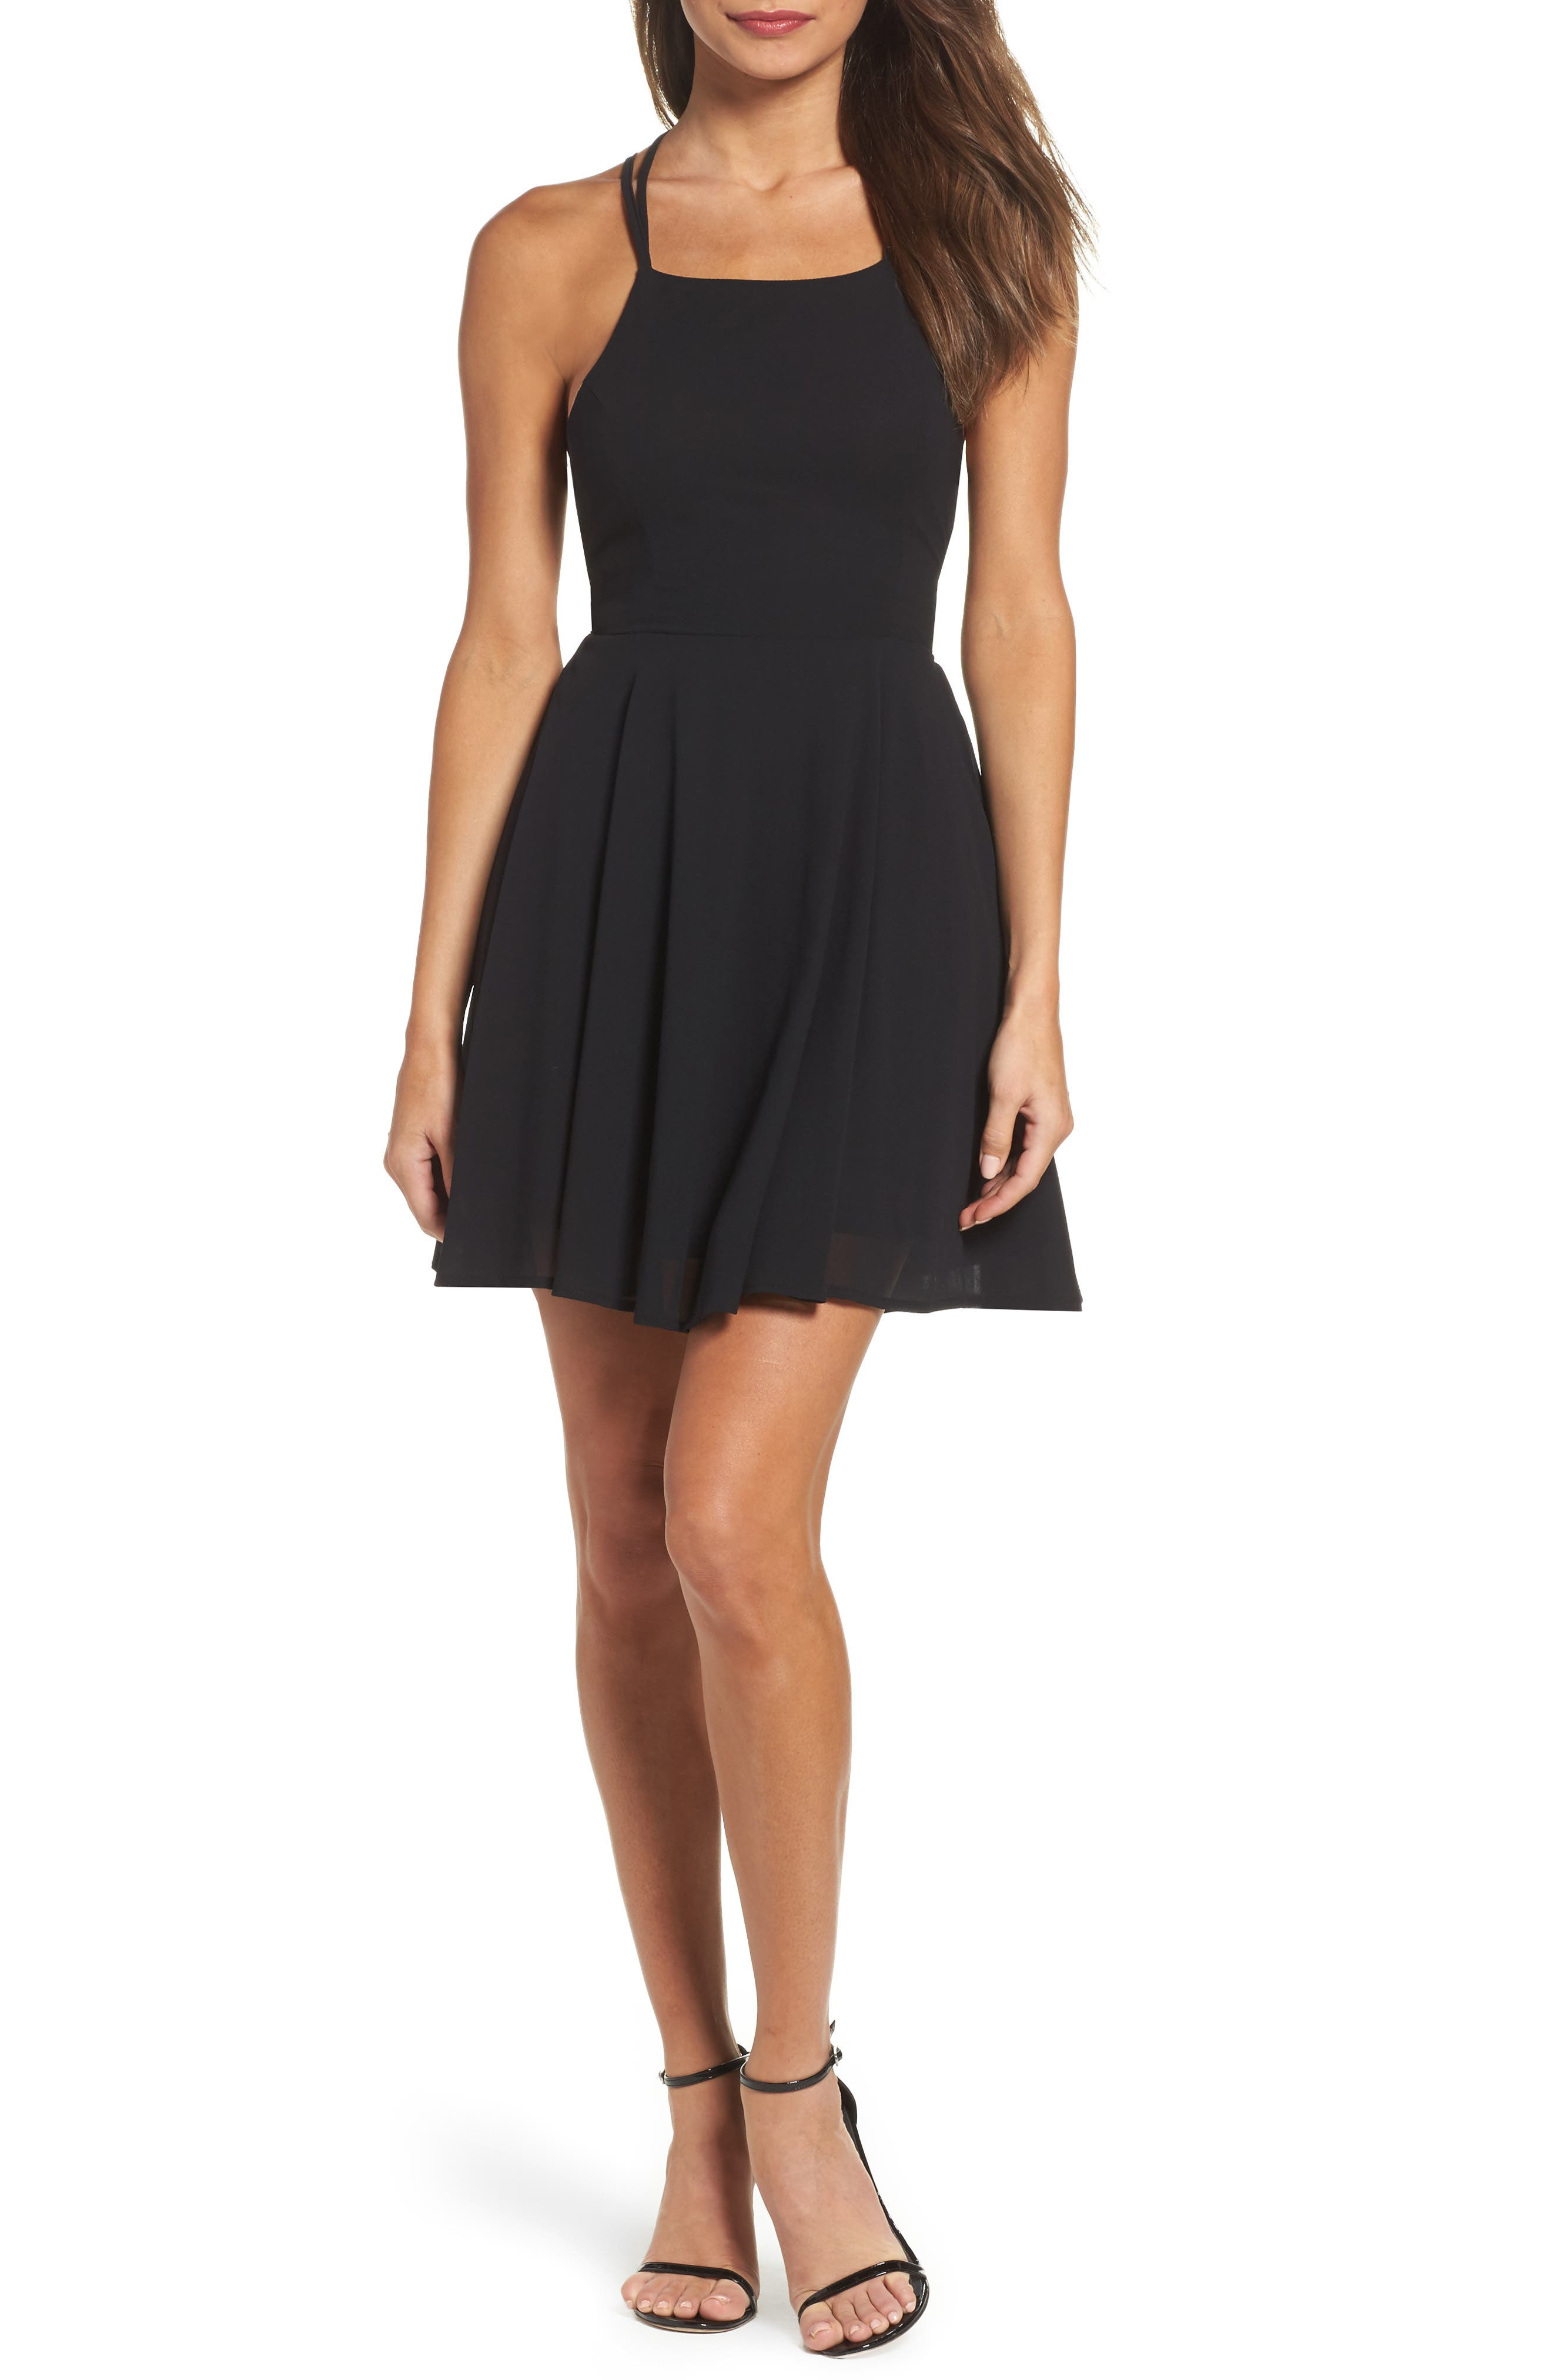 LULUS Good Deeds Lace-Up Skater Dress, Main, color, BLACK